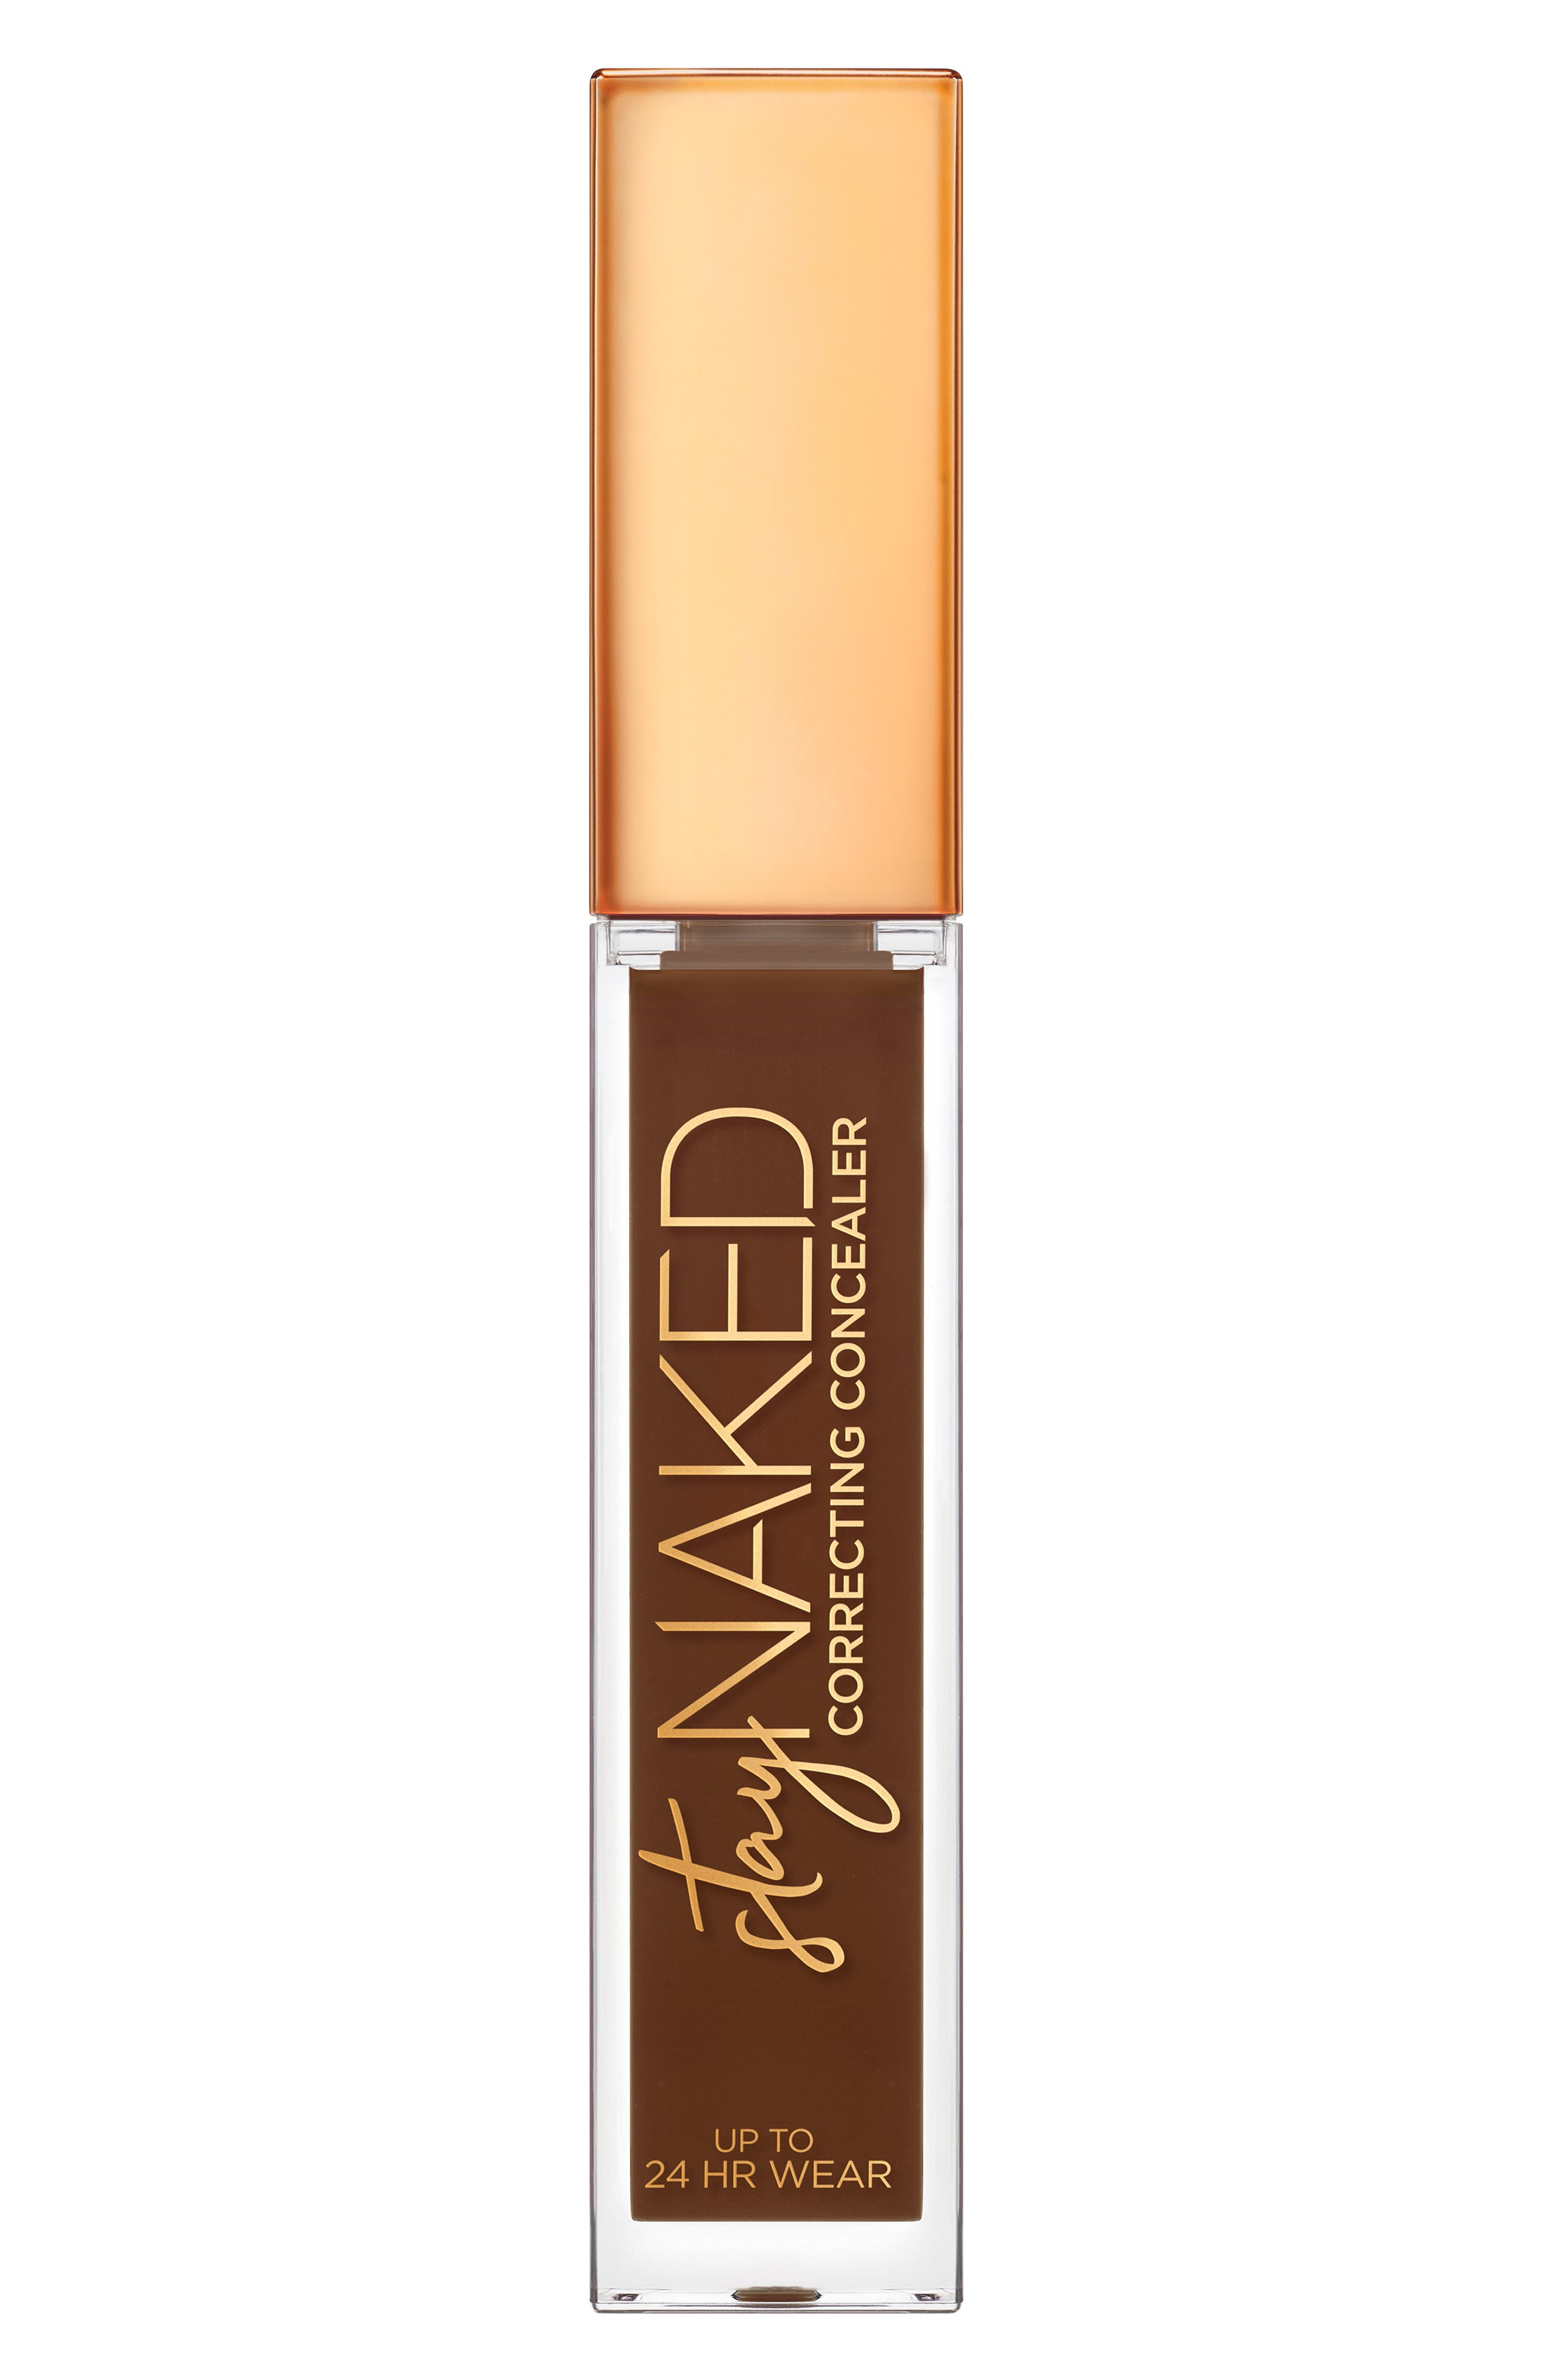 What it is: A vegan, demi-matte and flexible liquid concealer with 25% more pigment and full coverage that lasts up to 24 hours. What it does: With an expanded range of shades, there\\\'s enough of this concealer to go around. The flexible, second-skin matte formula can be used for just about anything, from covering an imperfection to highlighting a cheekbone. Its patented wave-tip applicator makes it easy to get the right level of coverage. Use the